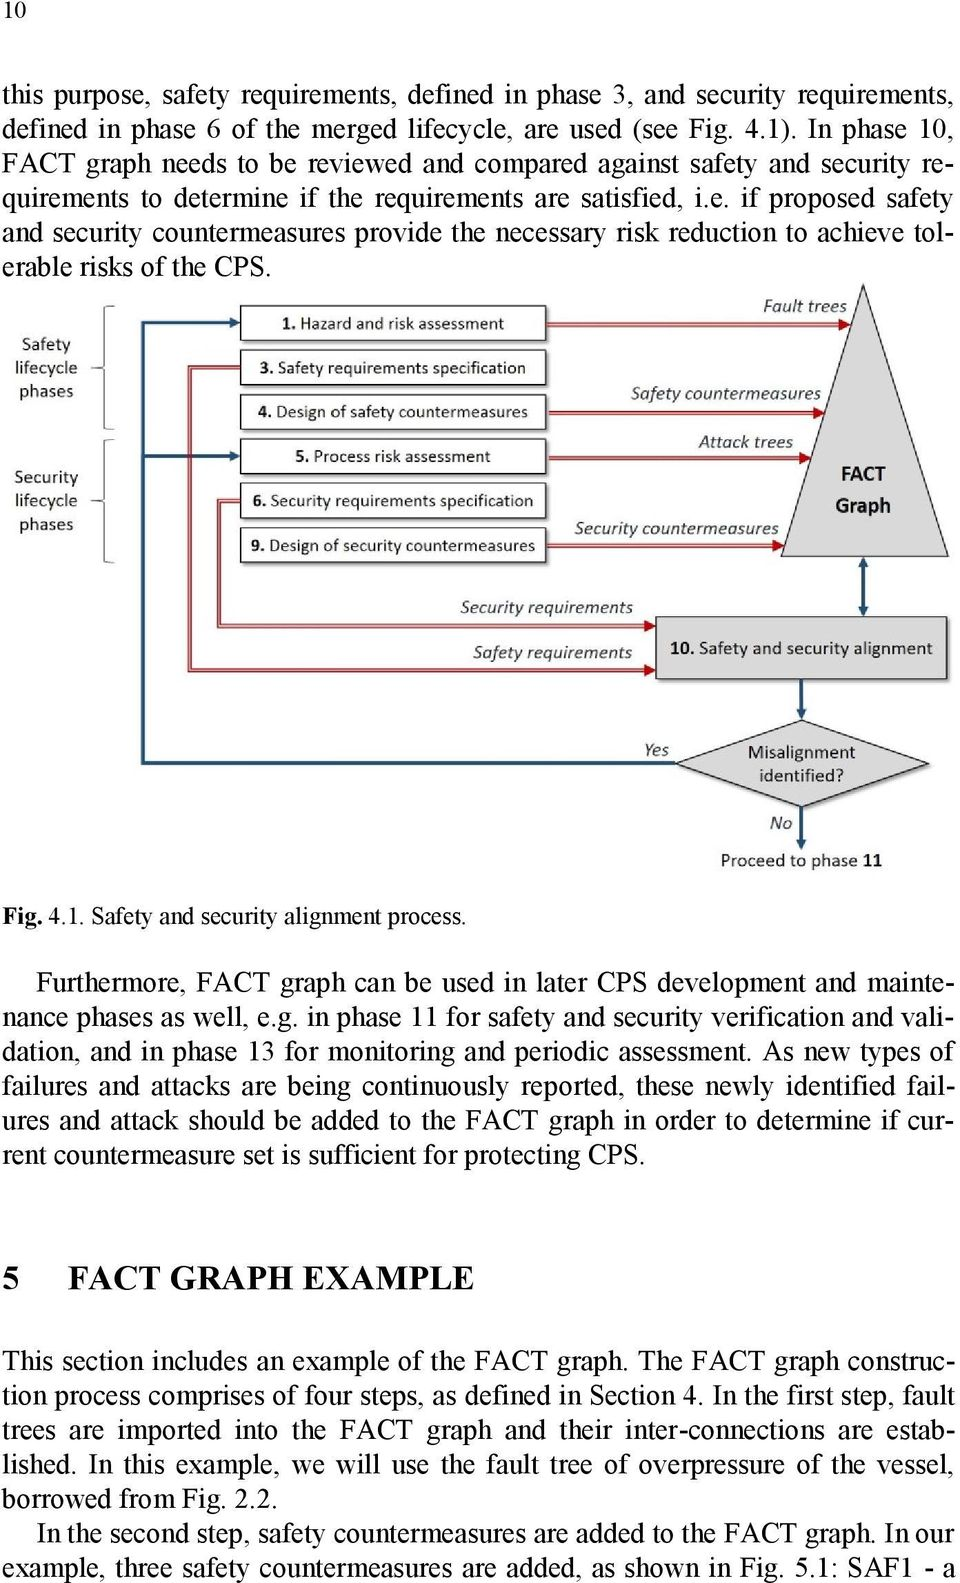 Fig. 4.1. Safety and security alignment process. Furthermore, FACT graph can be used in later CPS development and maintenance phases as well, e.g. in phase 11 for safety and security verification and validation, and in phase 13 for monitoring and periodic assessment.